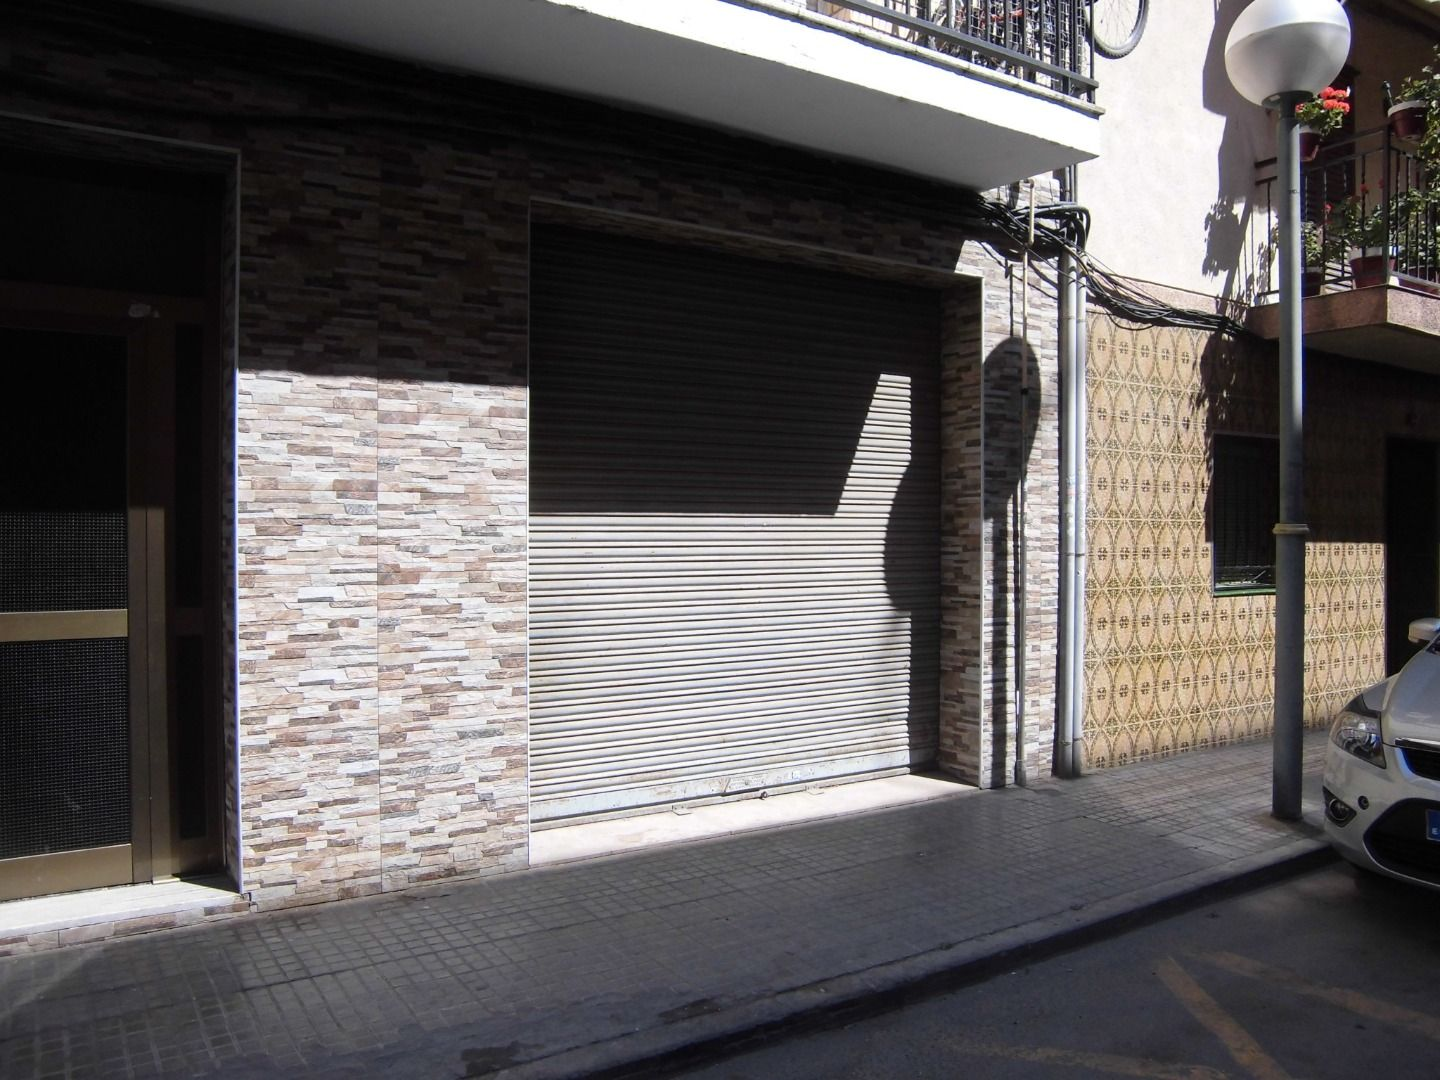 Local Comercial en Carrer vint-i-un